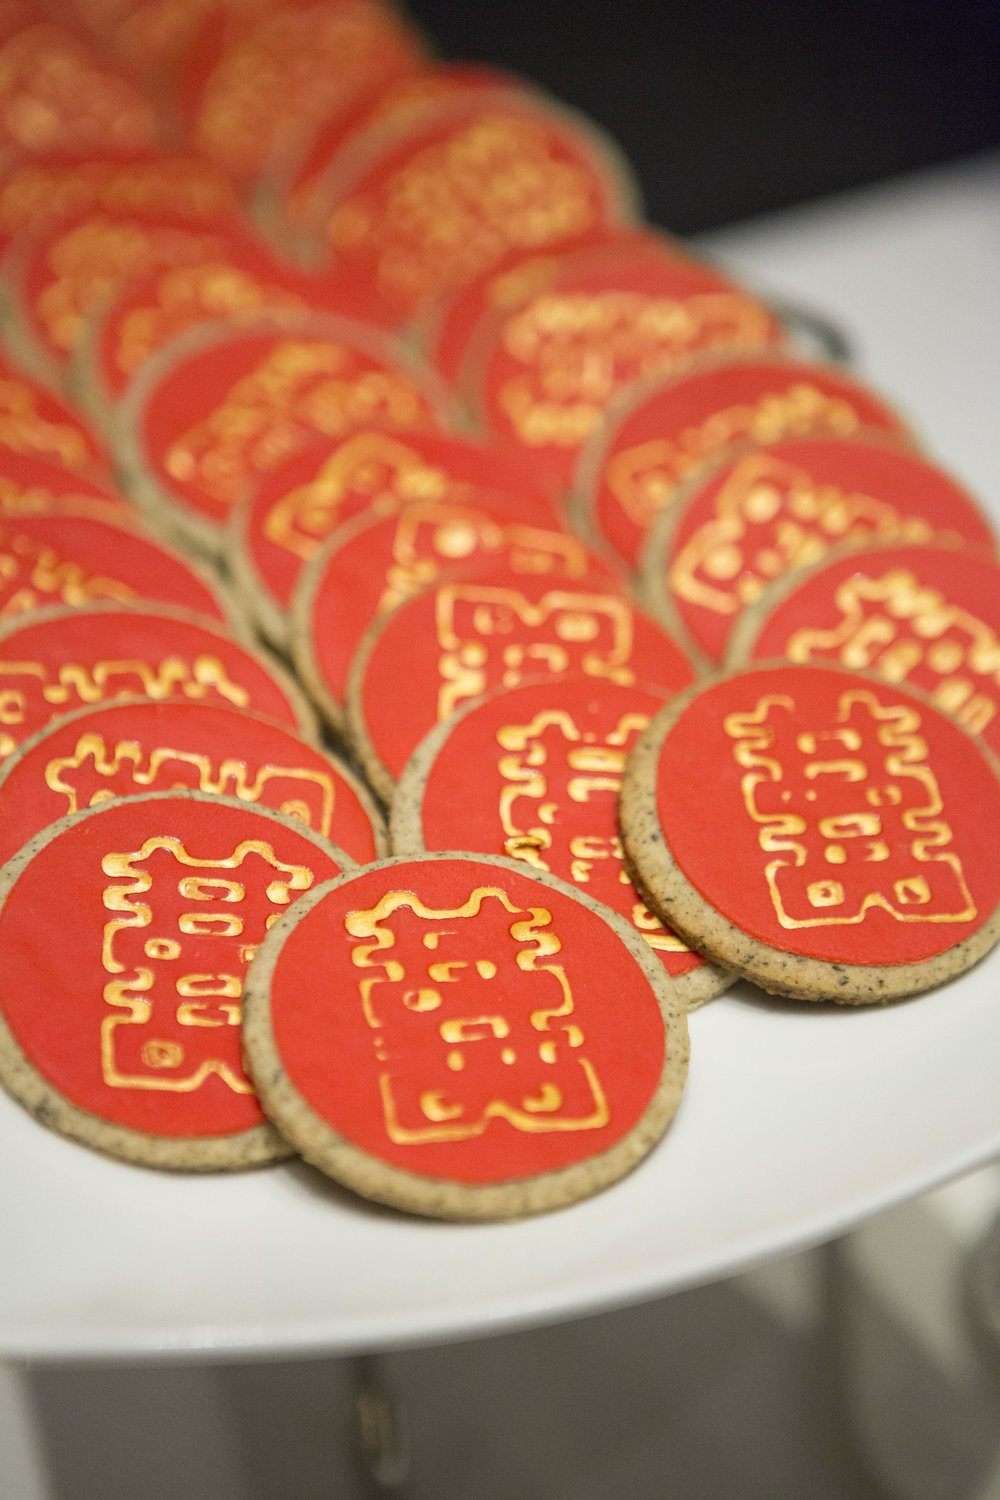 East meets west wedding cookies made by Gusta Cooking Studio